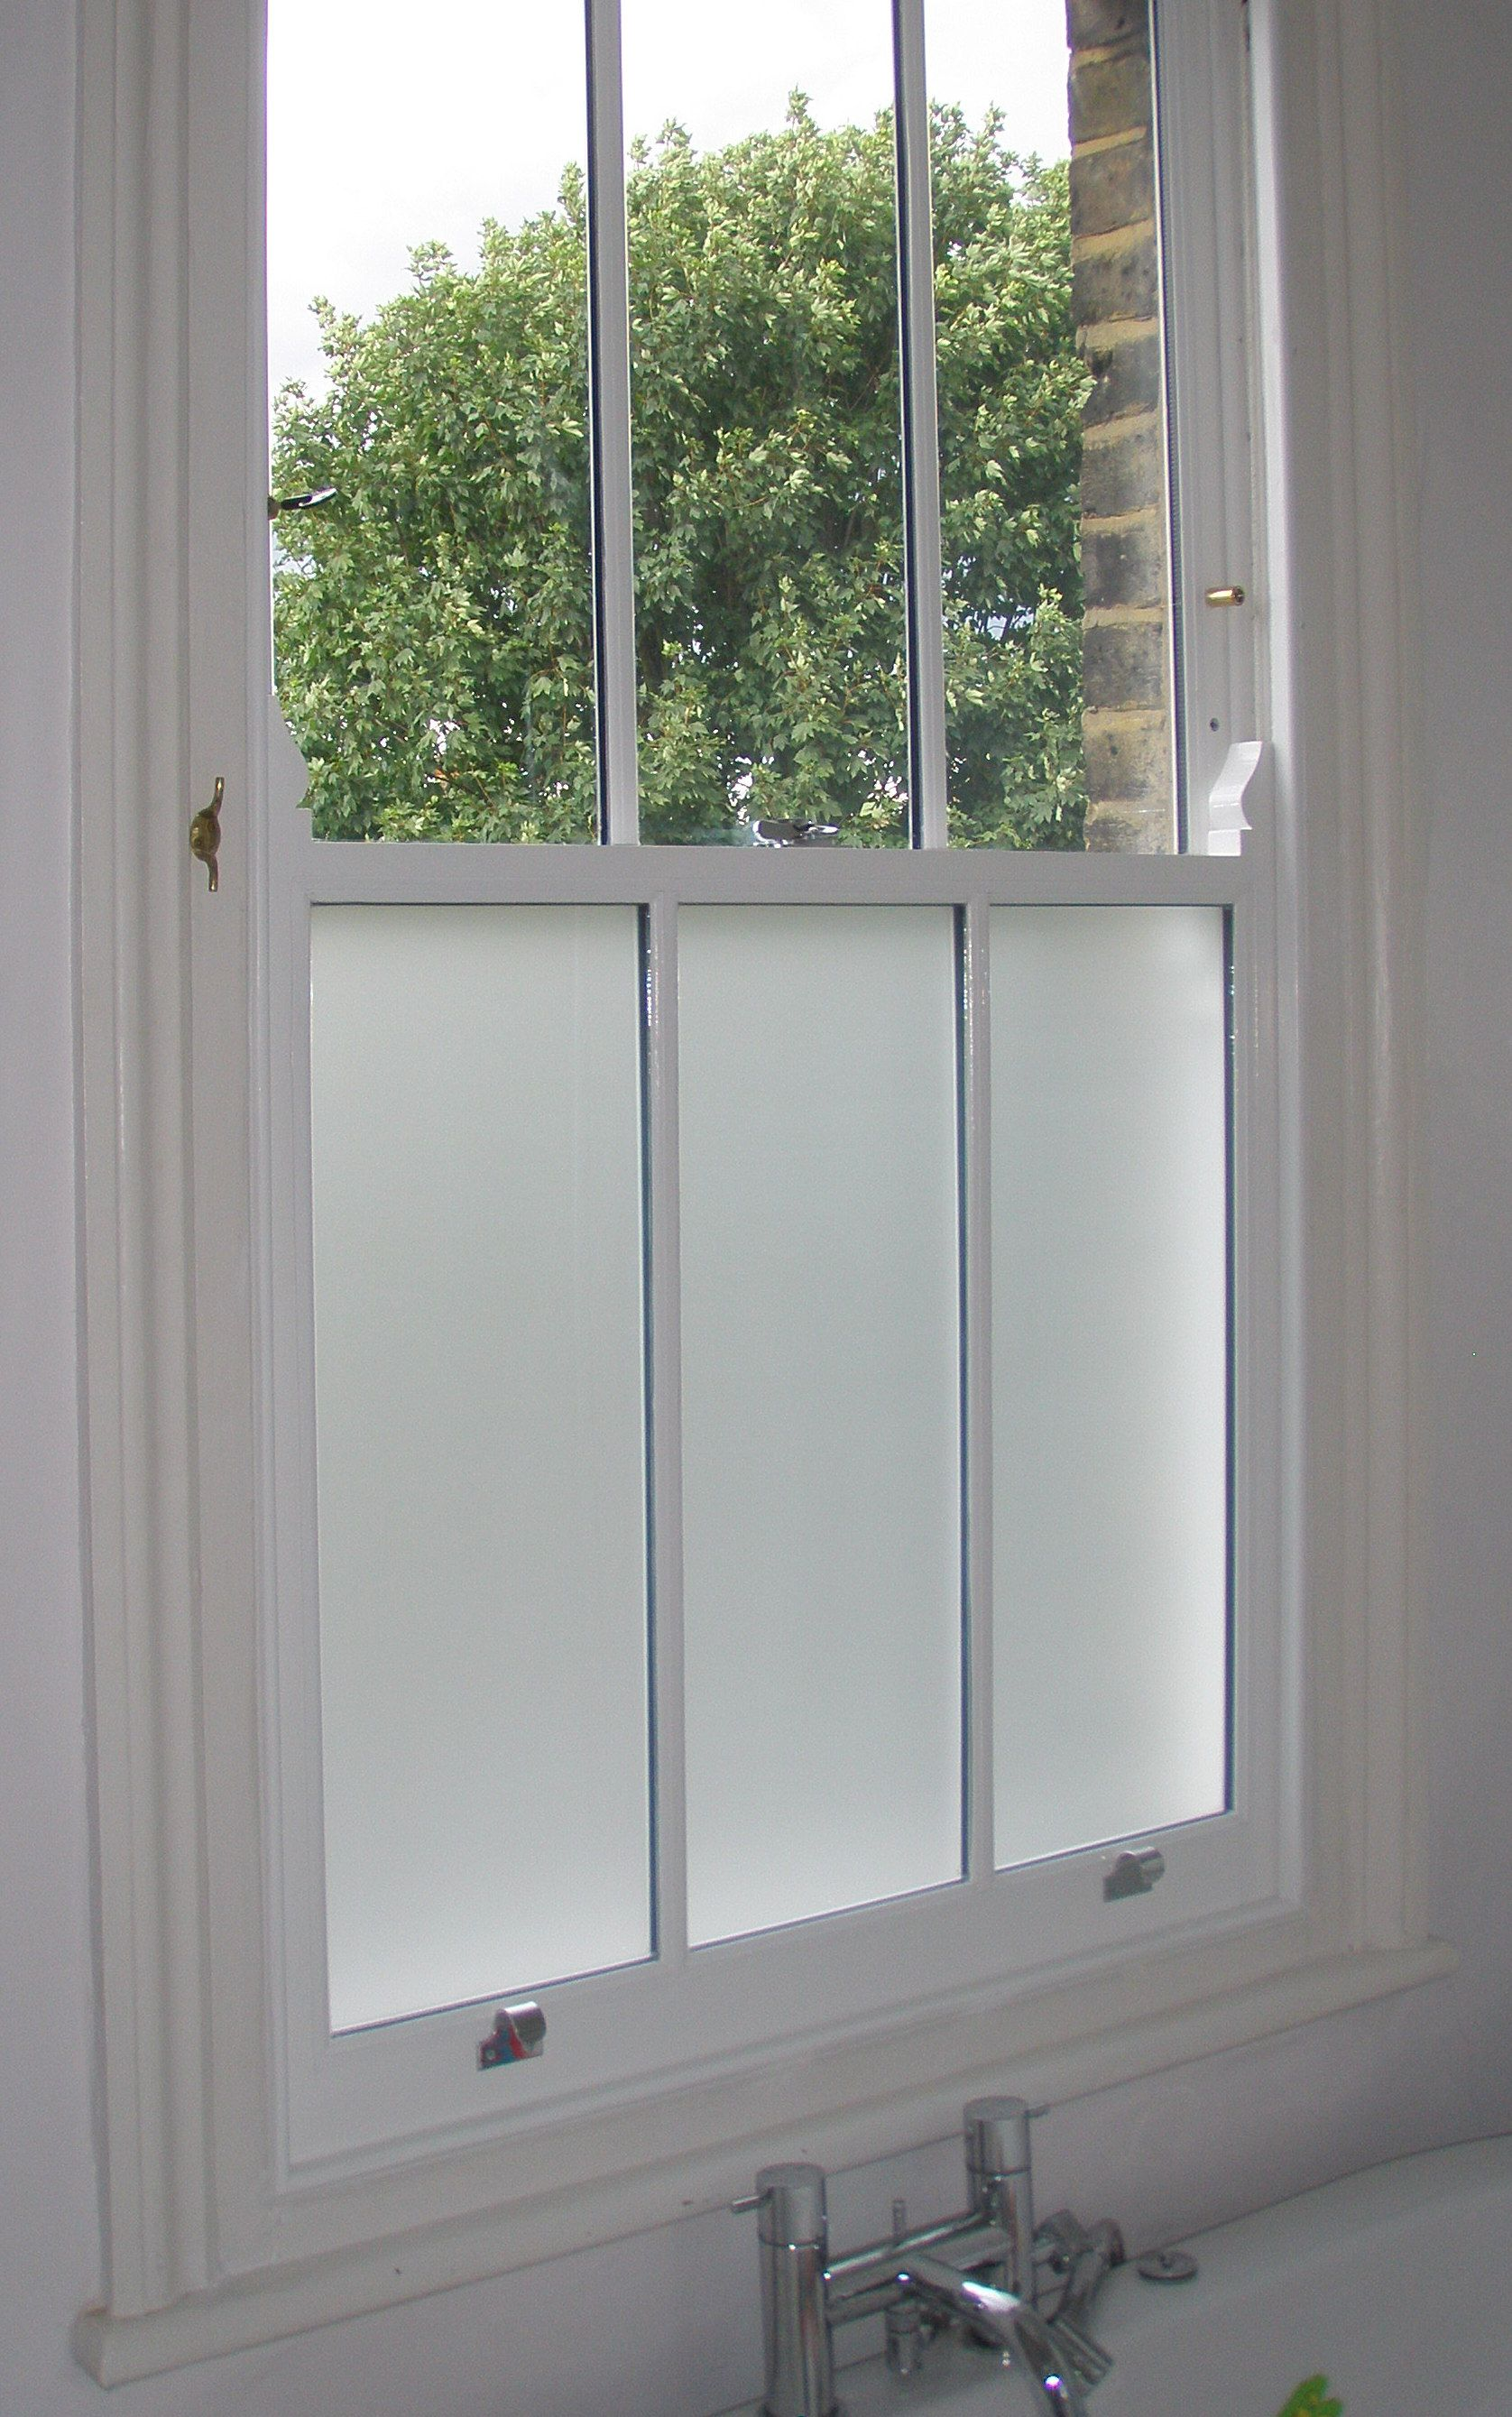 This double glazed sash window in a Bathroom has the added benefit